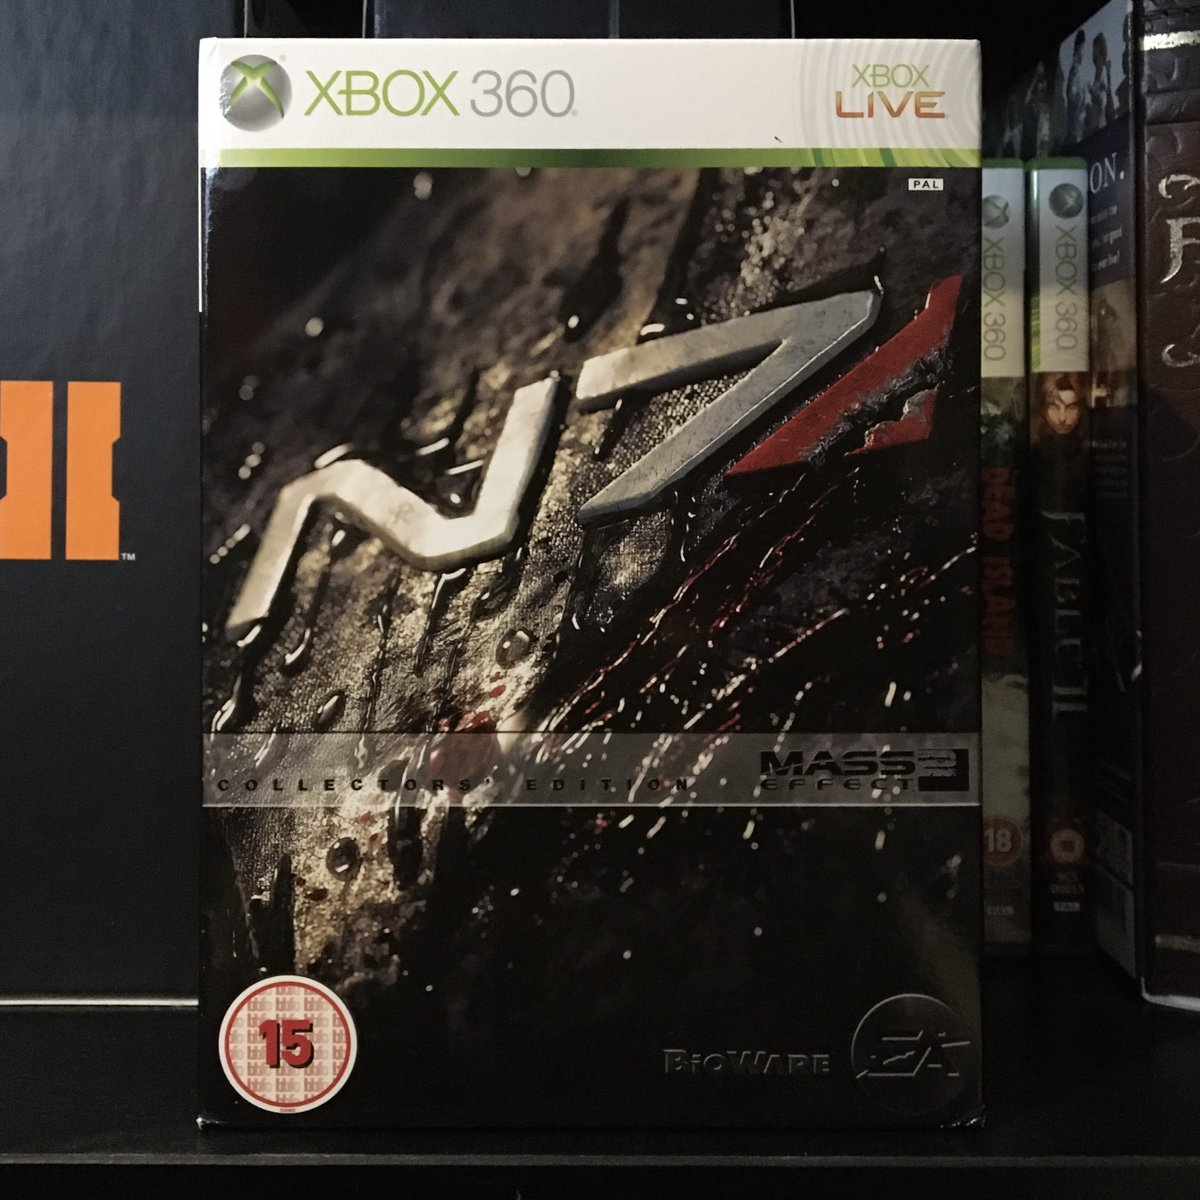 Today marks the 10th anniversary of @BioWare's #MassEffect2 being released in the UK. And what a belter of a game it was too!  #xbox #xbox360 #bioware #electronicarts #ea #boxart #videogames #retrogaming #retrogamerpic.twitter.com/kzeVGx42oP